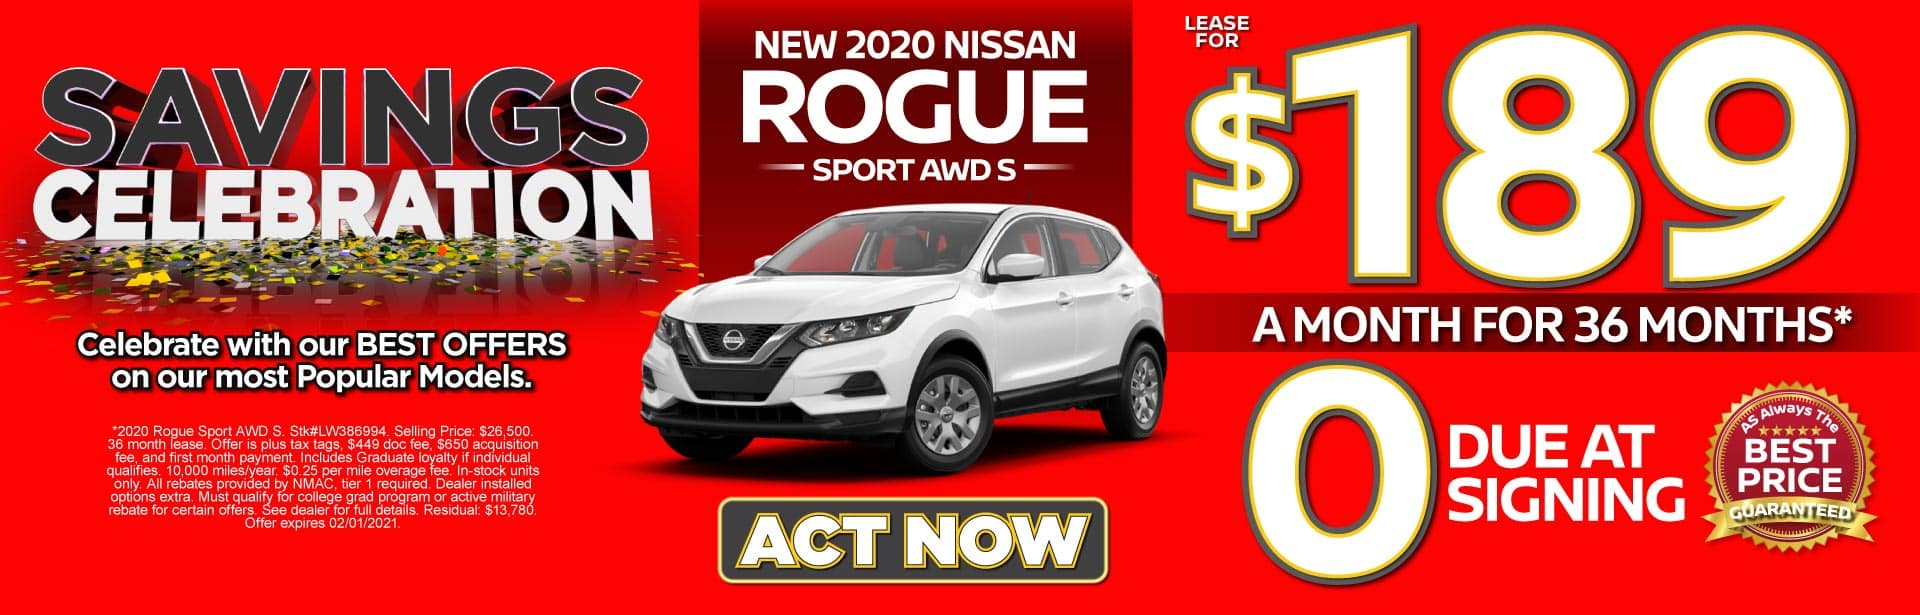 2021 Nissan Rogue Sport AWD S $189 a month for 36 months* ZERO due at signing. Act Now.